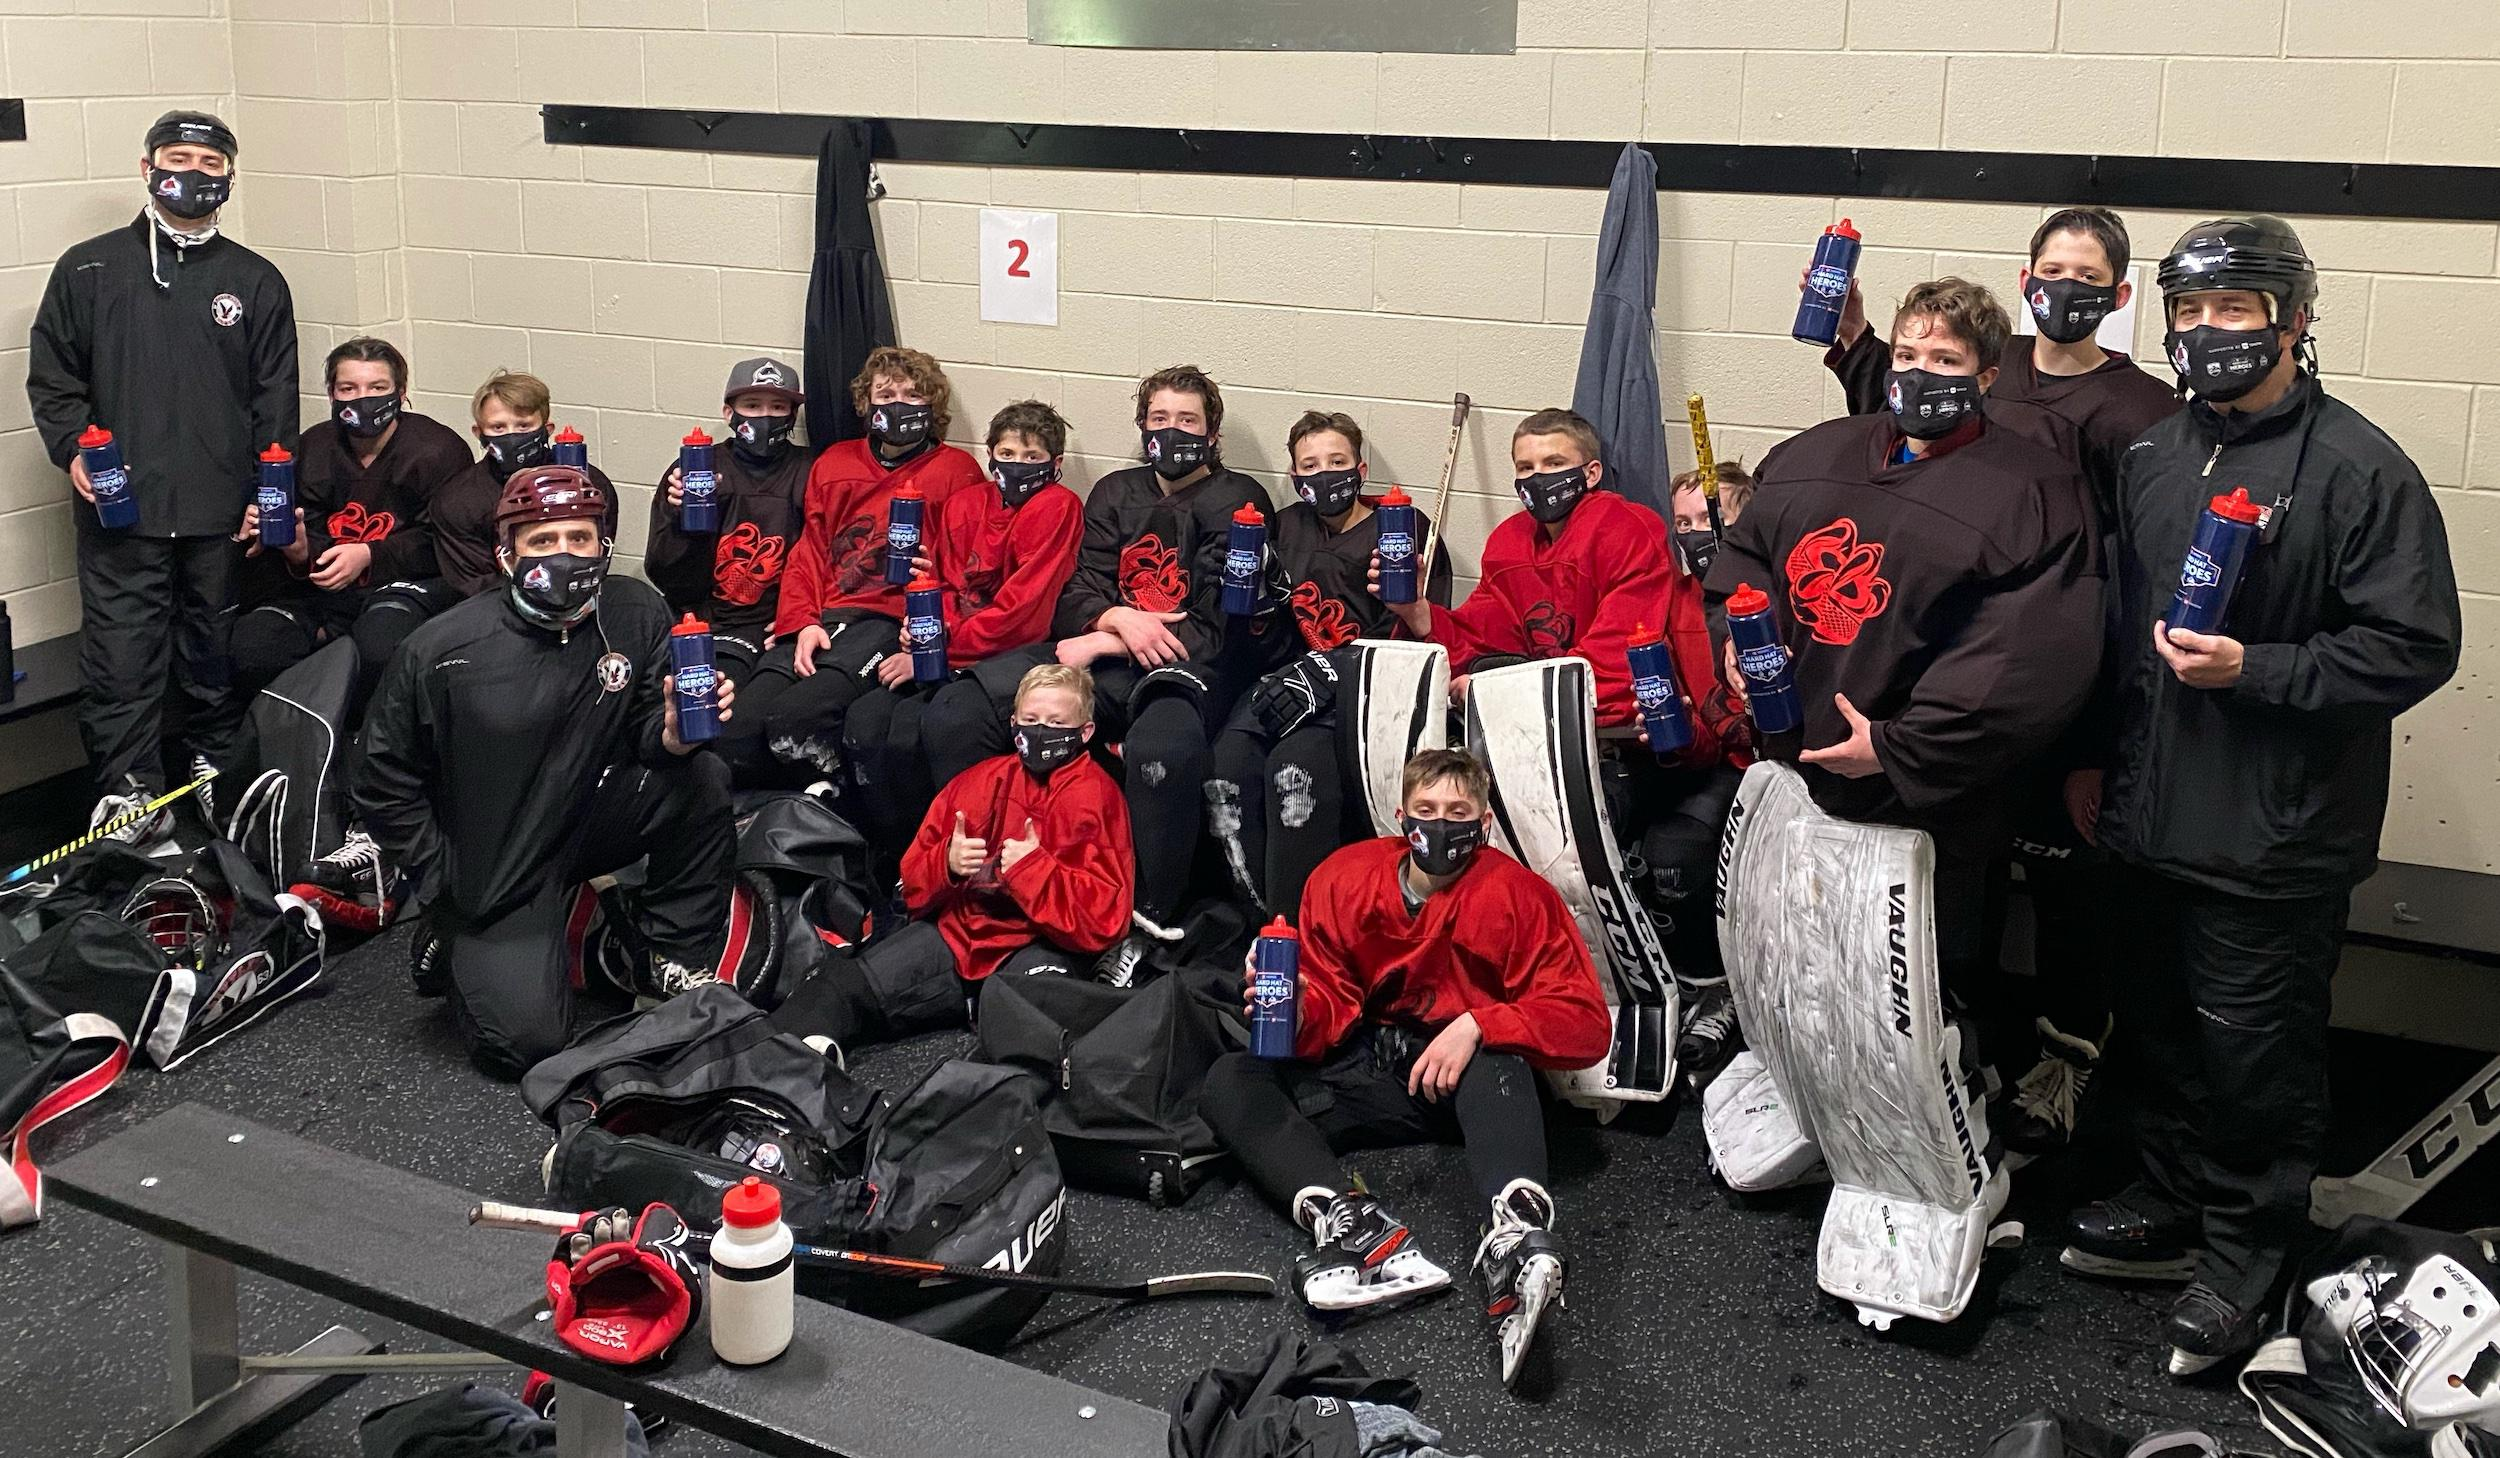 The Littleton Hockey Association Bantam B team received water bottles and face masks at practice. Photo courtesy of Brian TenEyck